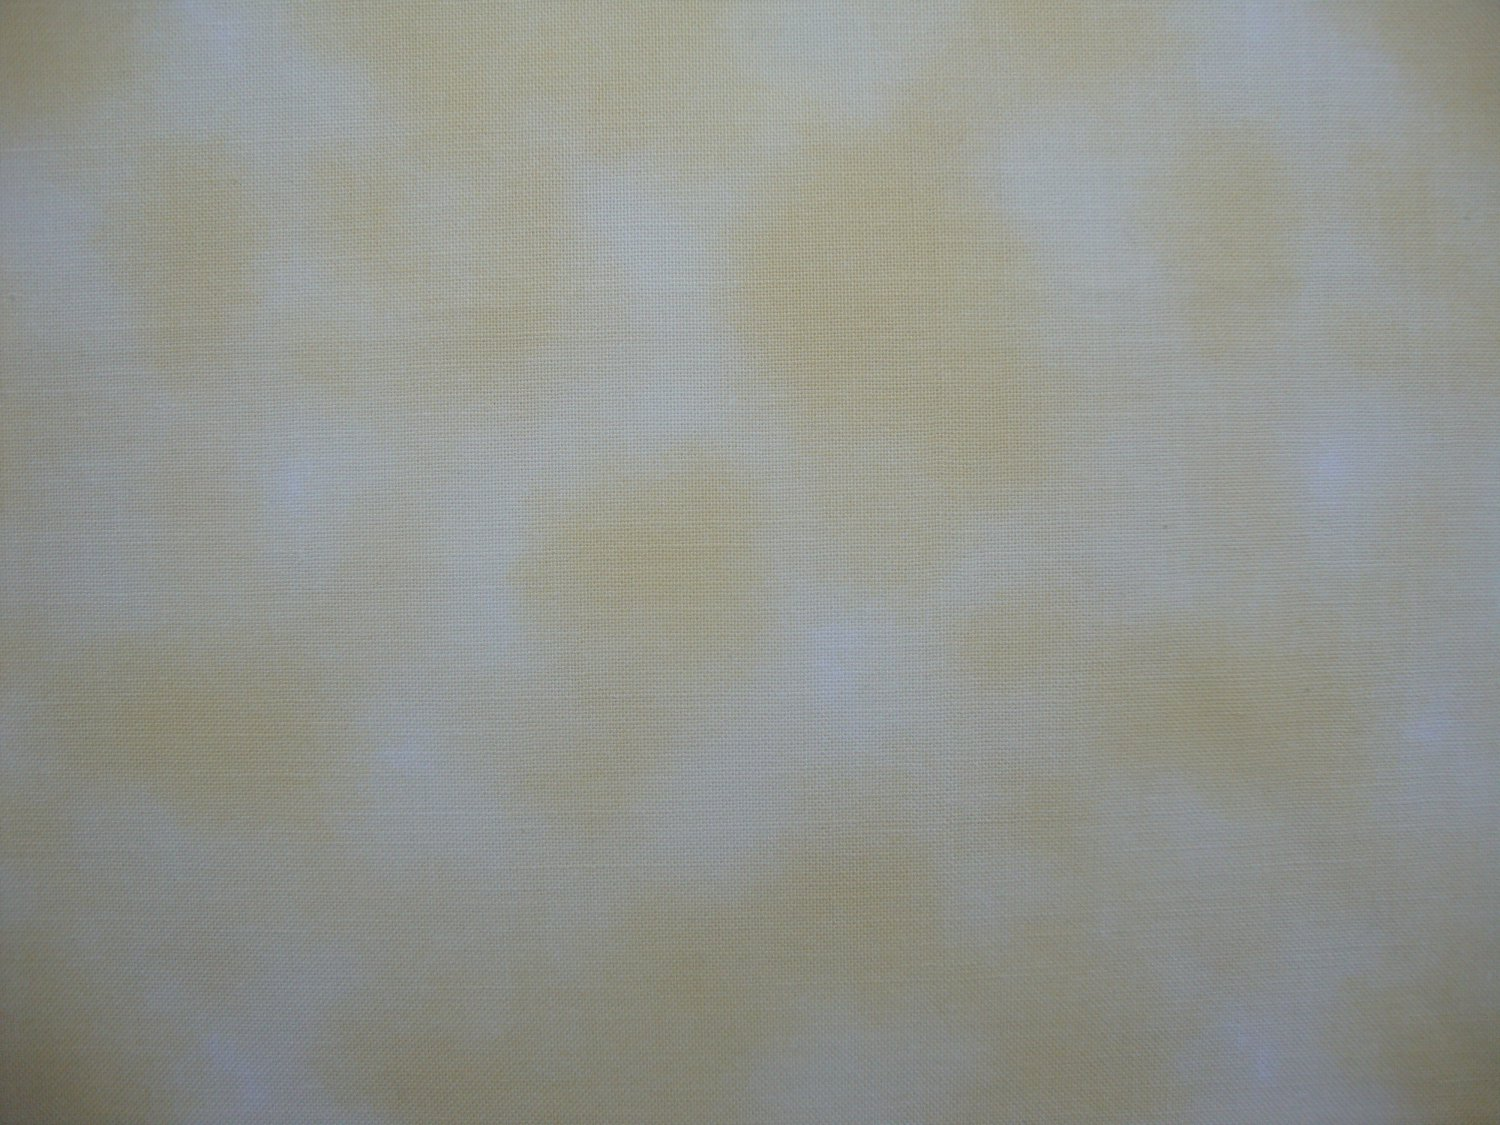 1 3/8+ Yard Bolt End Mottled Yellow Cotton Fabric from The World of Beatrix Potter Fabric Line